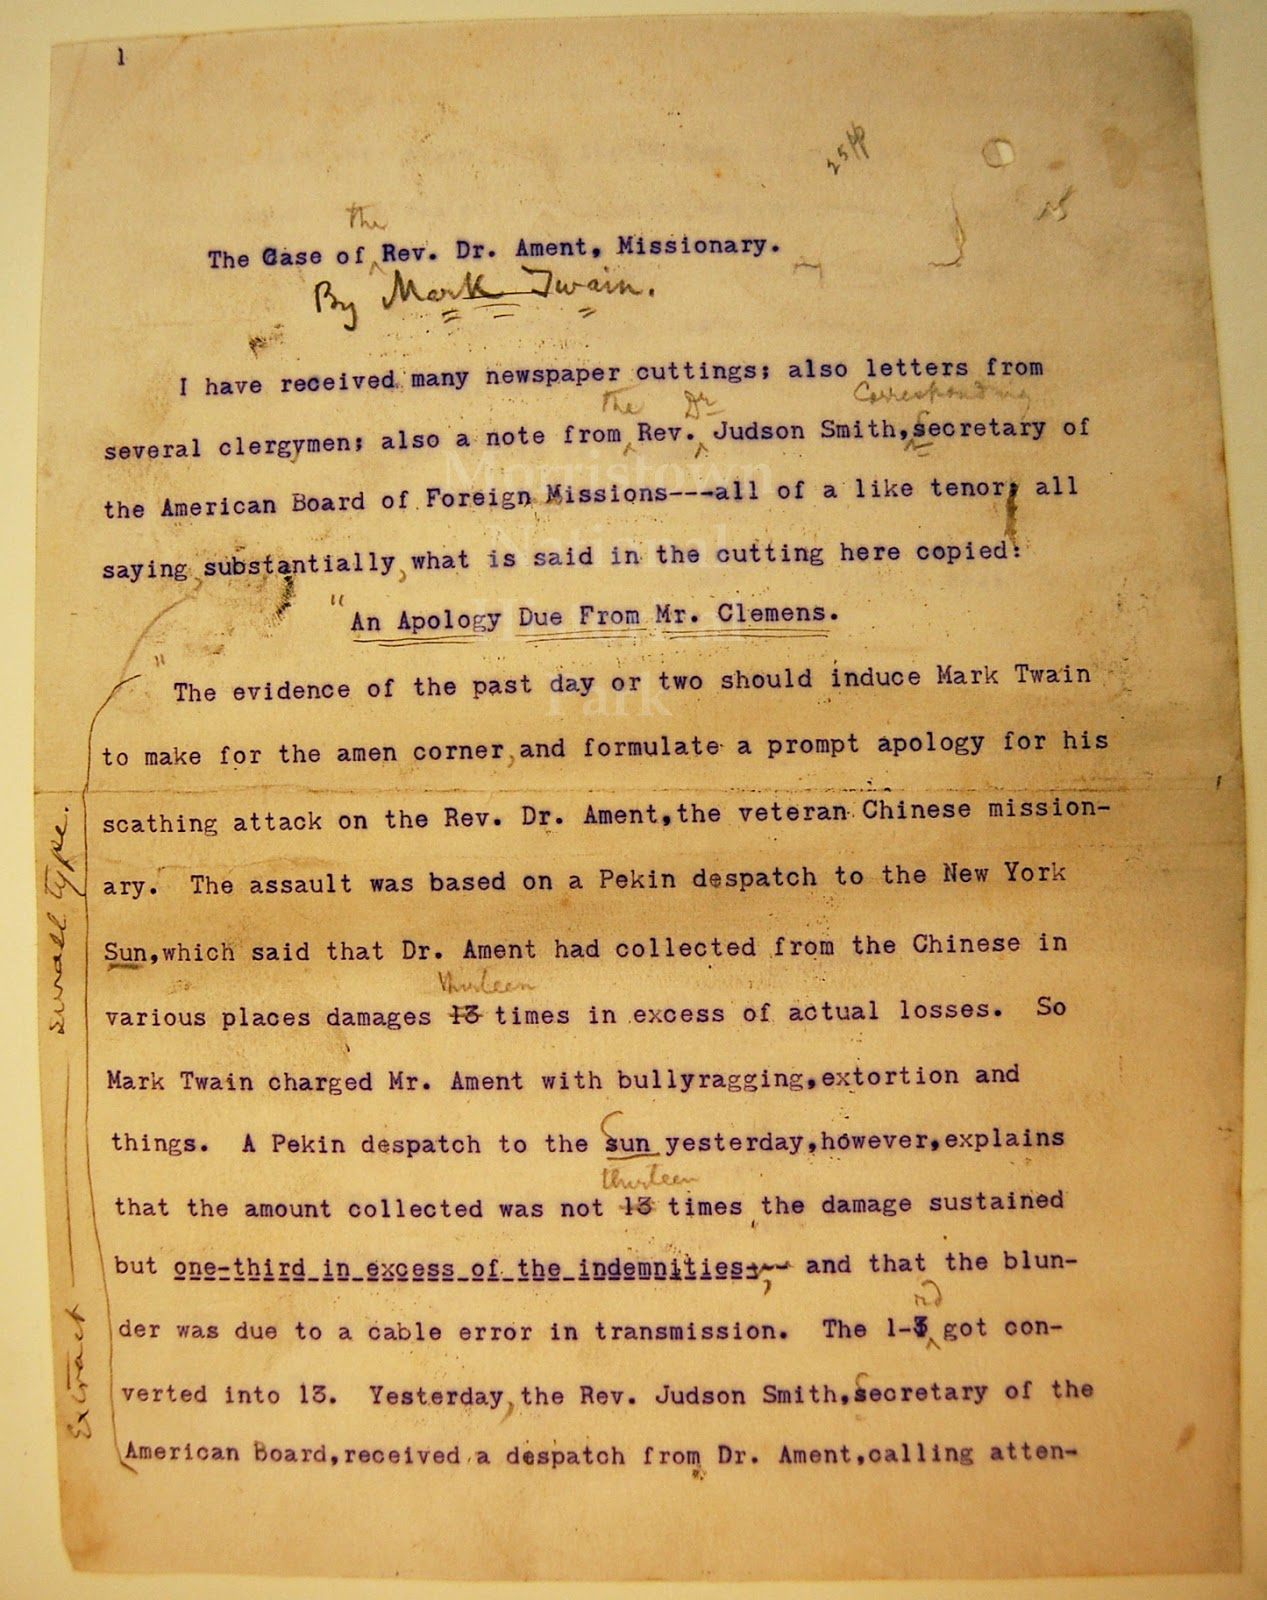 morristown national historical park museum and library featured featured manuscript edited mark twain article